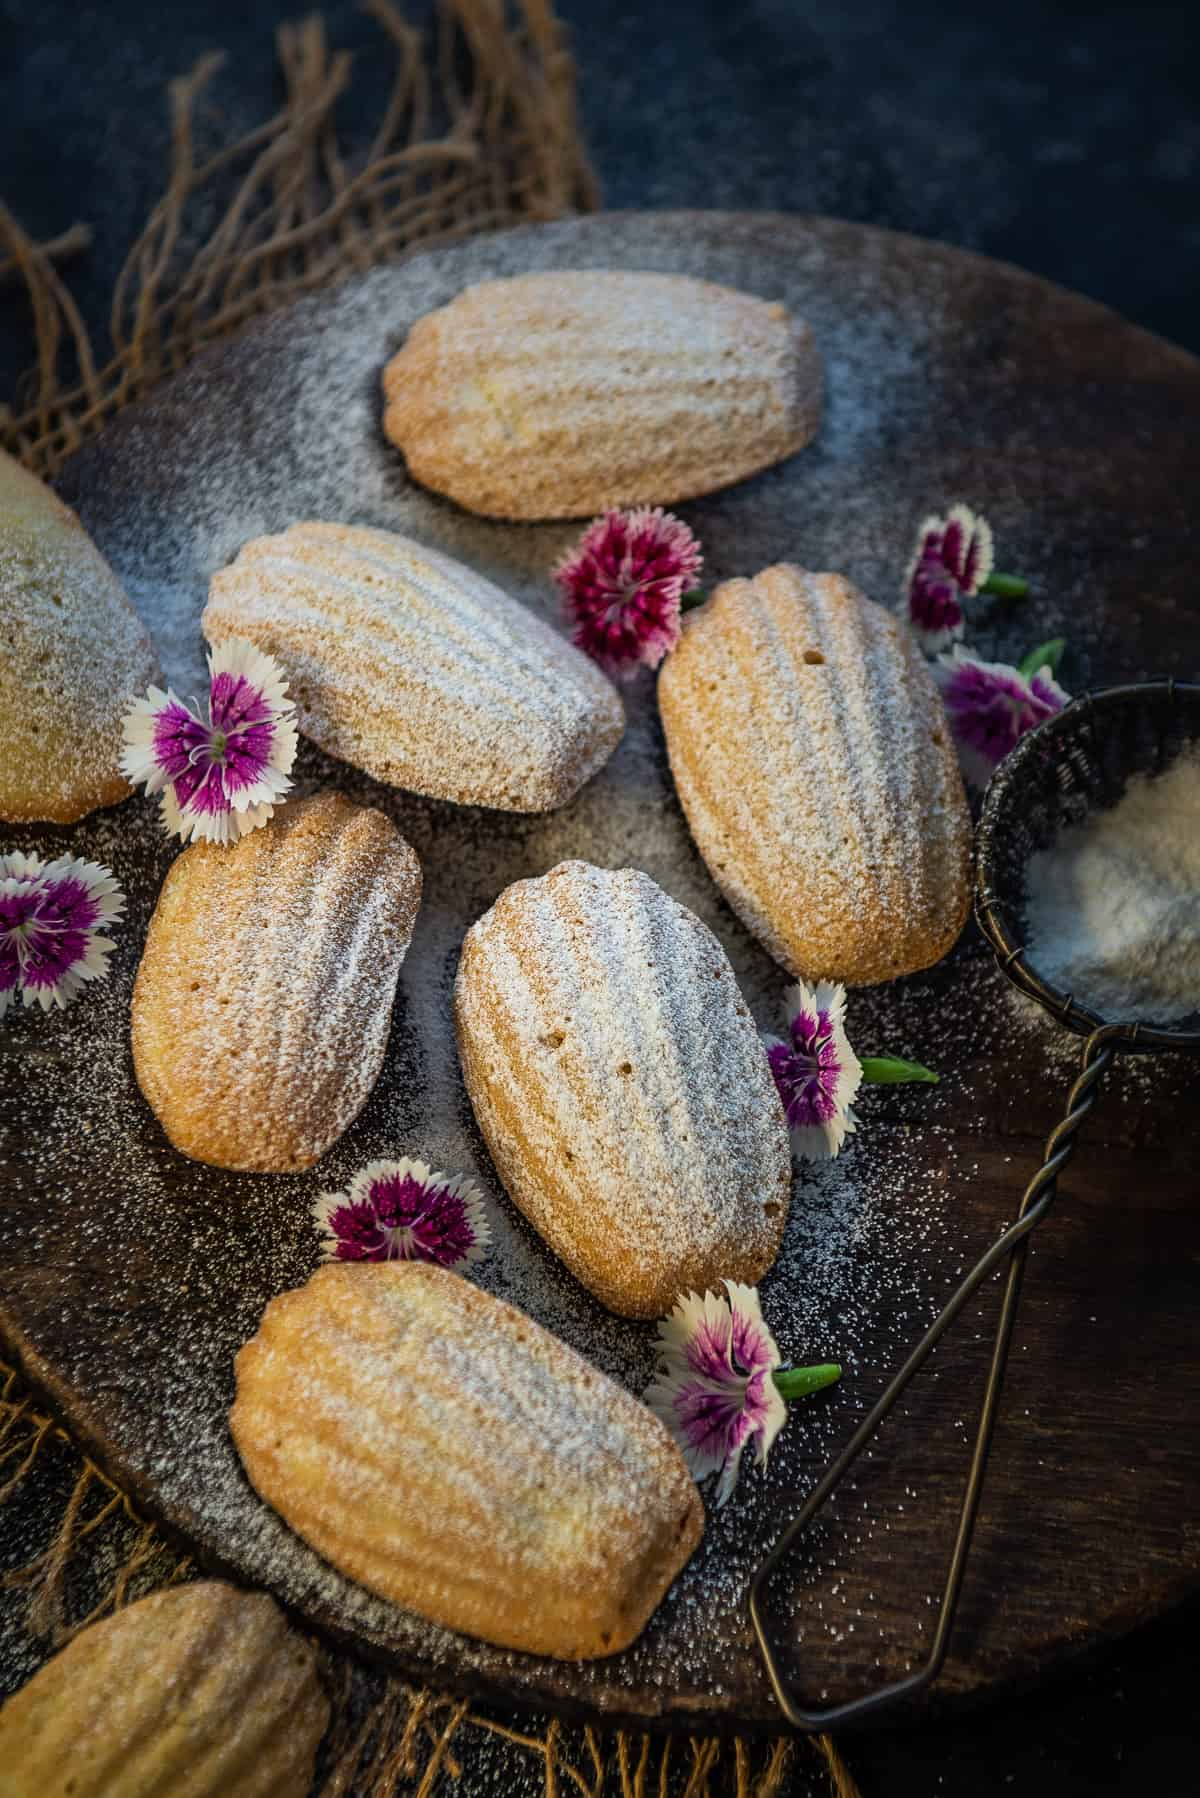 madeleines served on a plate.